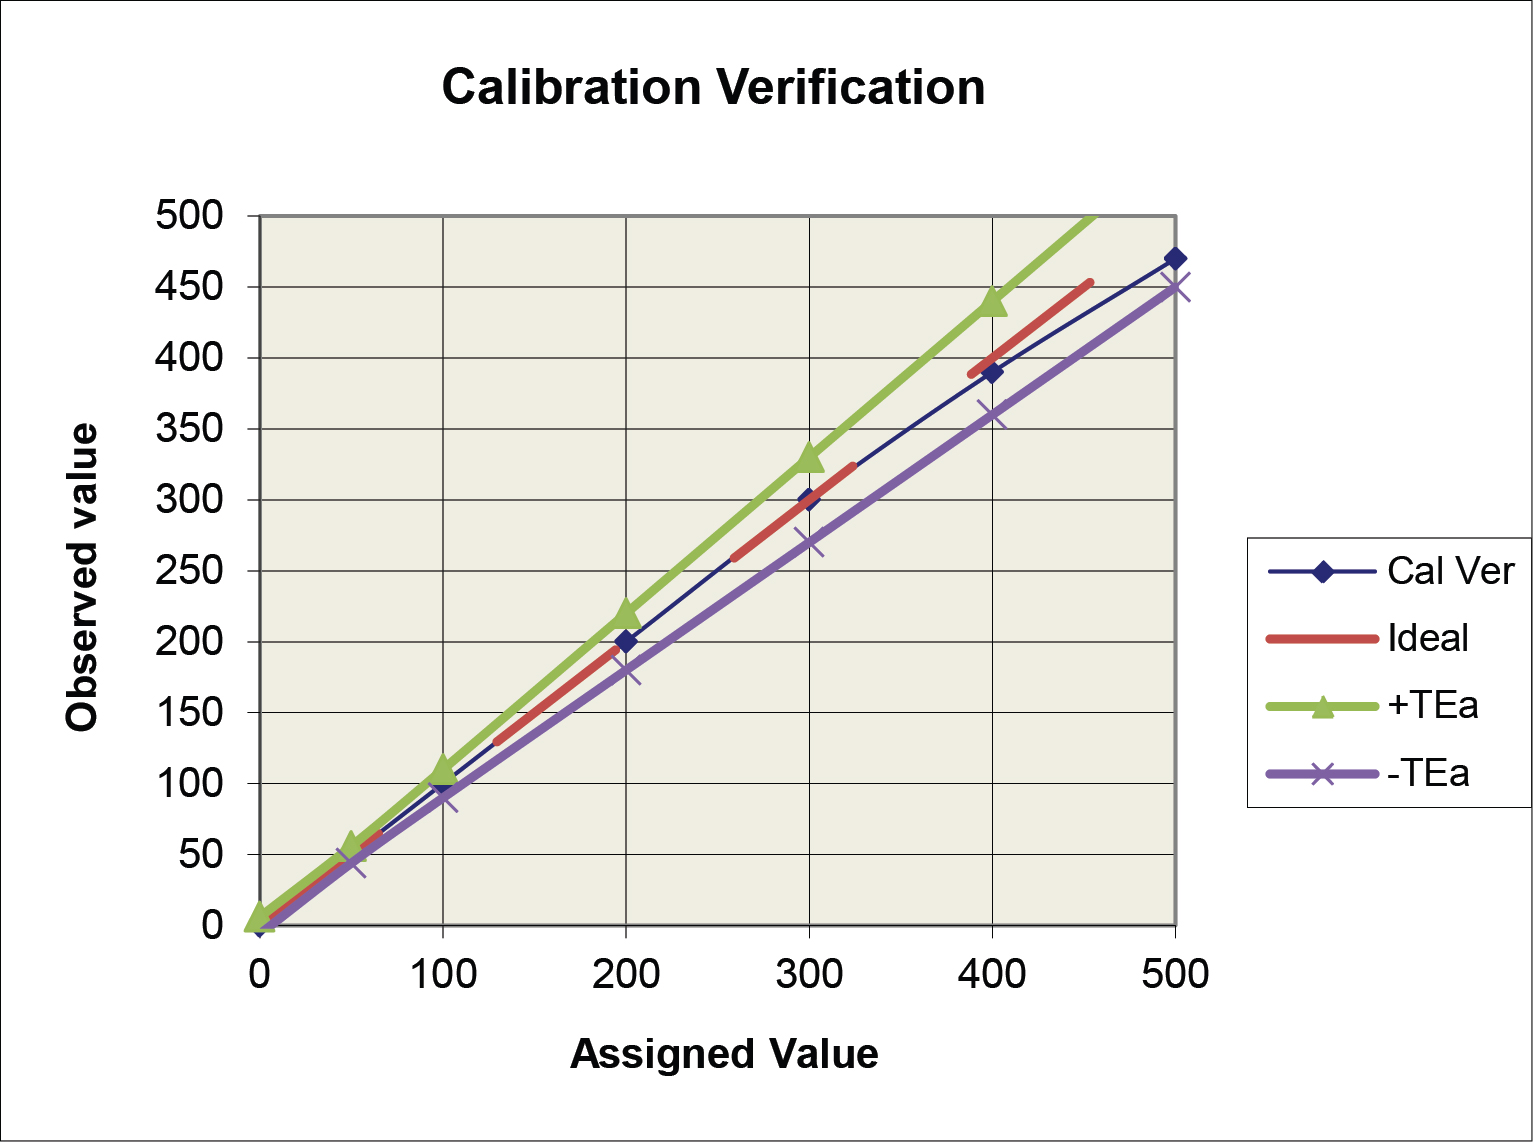 Typical Calibration Verification Graph